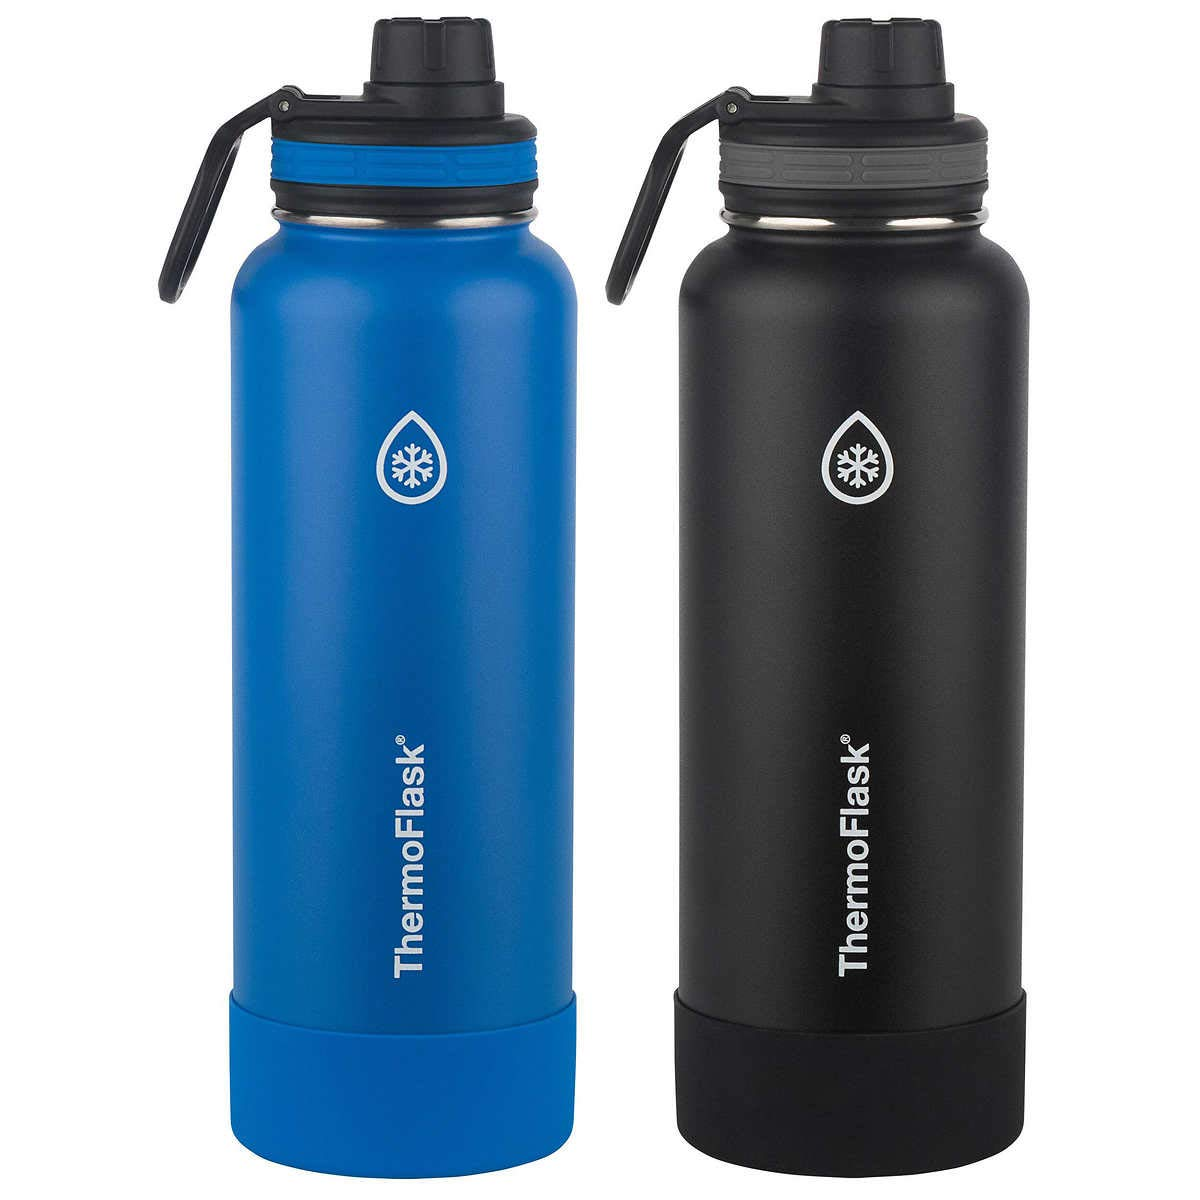 ThermoFlask Stainless Steel 40-Ounce Water Bottle (Light Blue/Black), 2-Piece (Ocean/Grey)